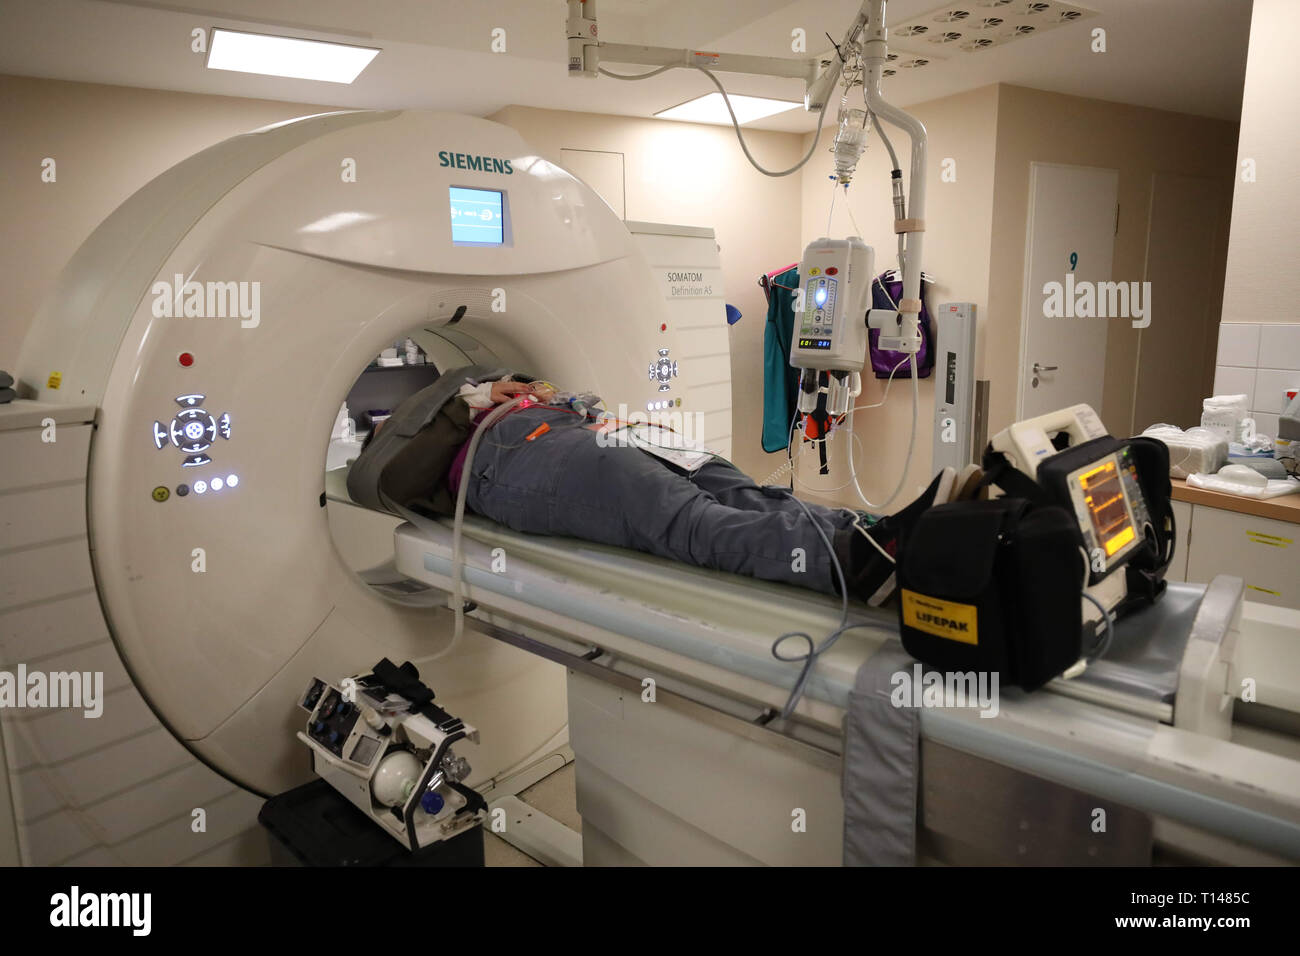 Suhl, Germany. 23rd Mar, 2019. In the SRH Zentralklinikum doctors examine an actor who mimics an injured person in a computer tomograph. During a large-scale exercise in the Berg Bock tunnel of the Autobahn 71 with around 600 participants from the fire brigade, rescue service, ambulance and care trains and the police, the rescue, salvage and care of many injured persons after a serious traffic accident is practiced. Credit: Bodo Schackow/dpa-Zentralbild/ZB/dpa/Alamy Live News Stock Photo